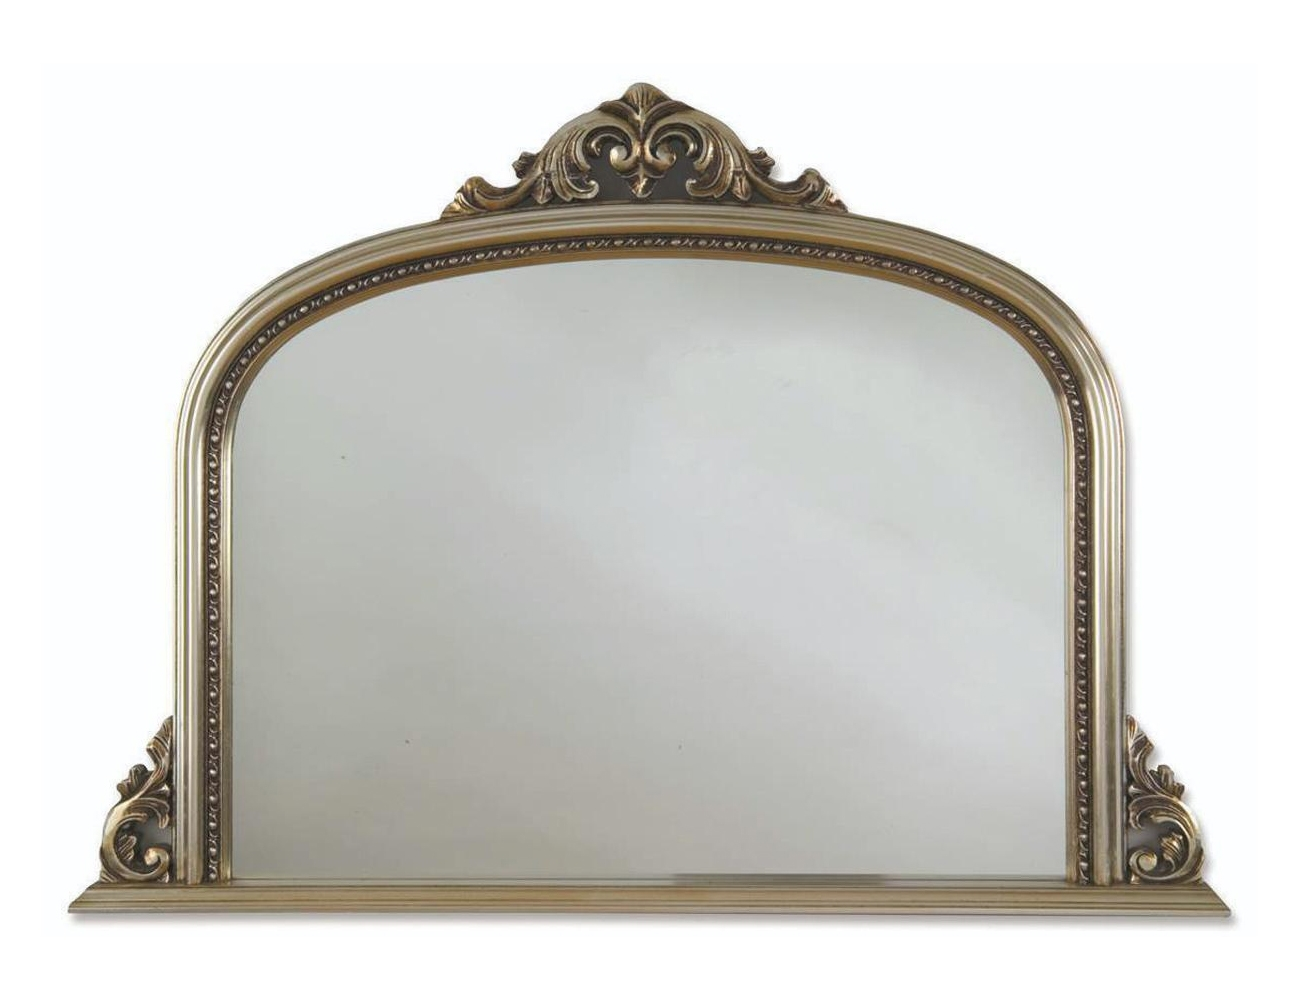 Heritage Archway Champagne Silver Wooden Frame Mirror 1270 X 910mm Intended For Champagne Silver Mirror (View 5 of 15)